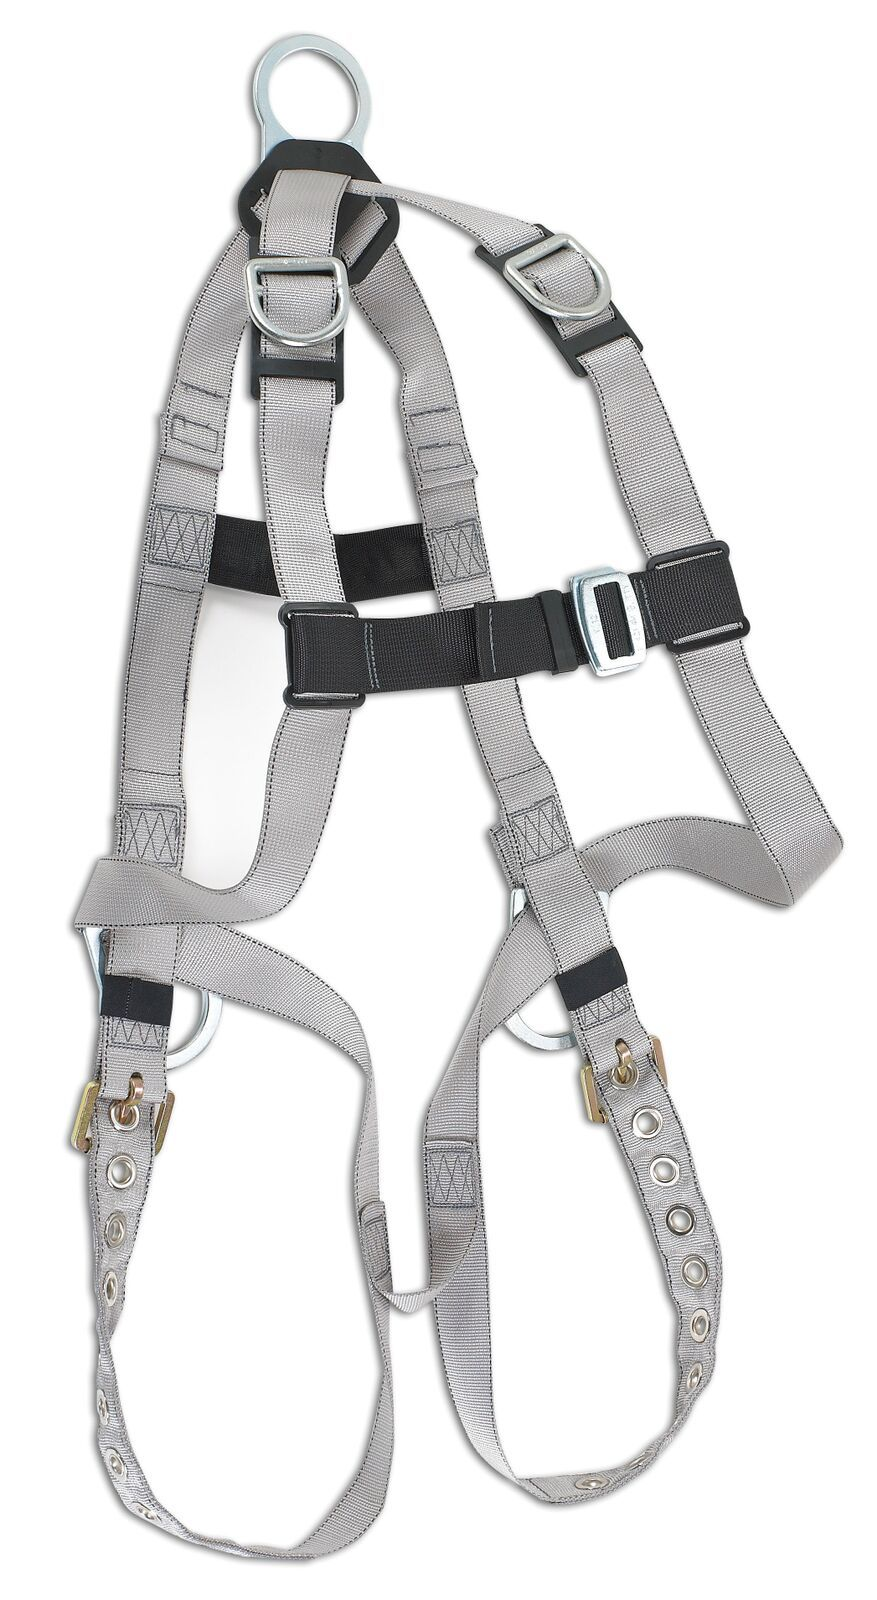 Dynamic B-Compliant Universal Harness Confined Space - Cleanflow